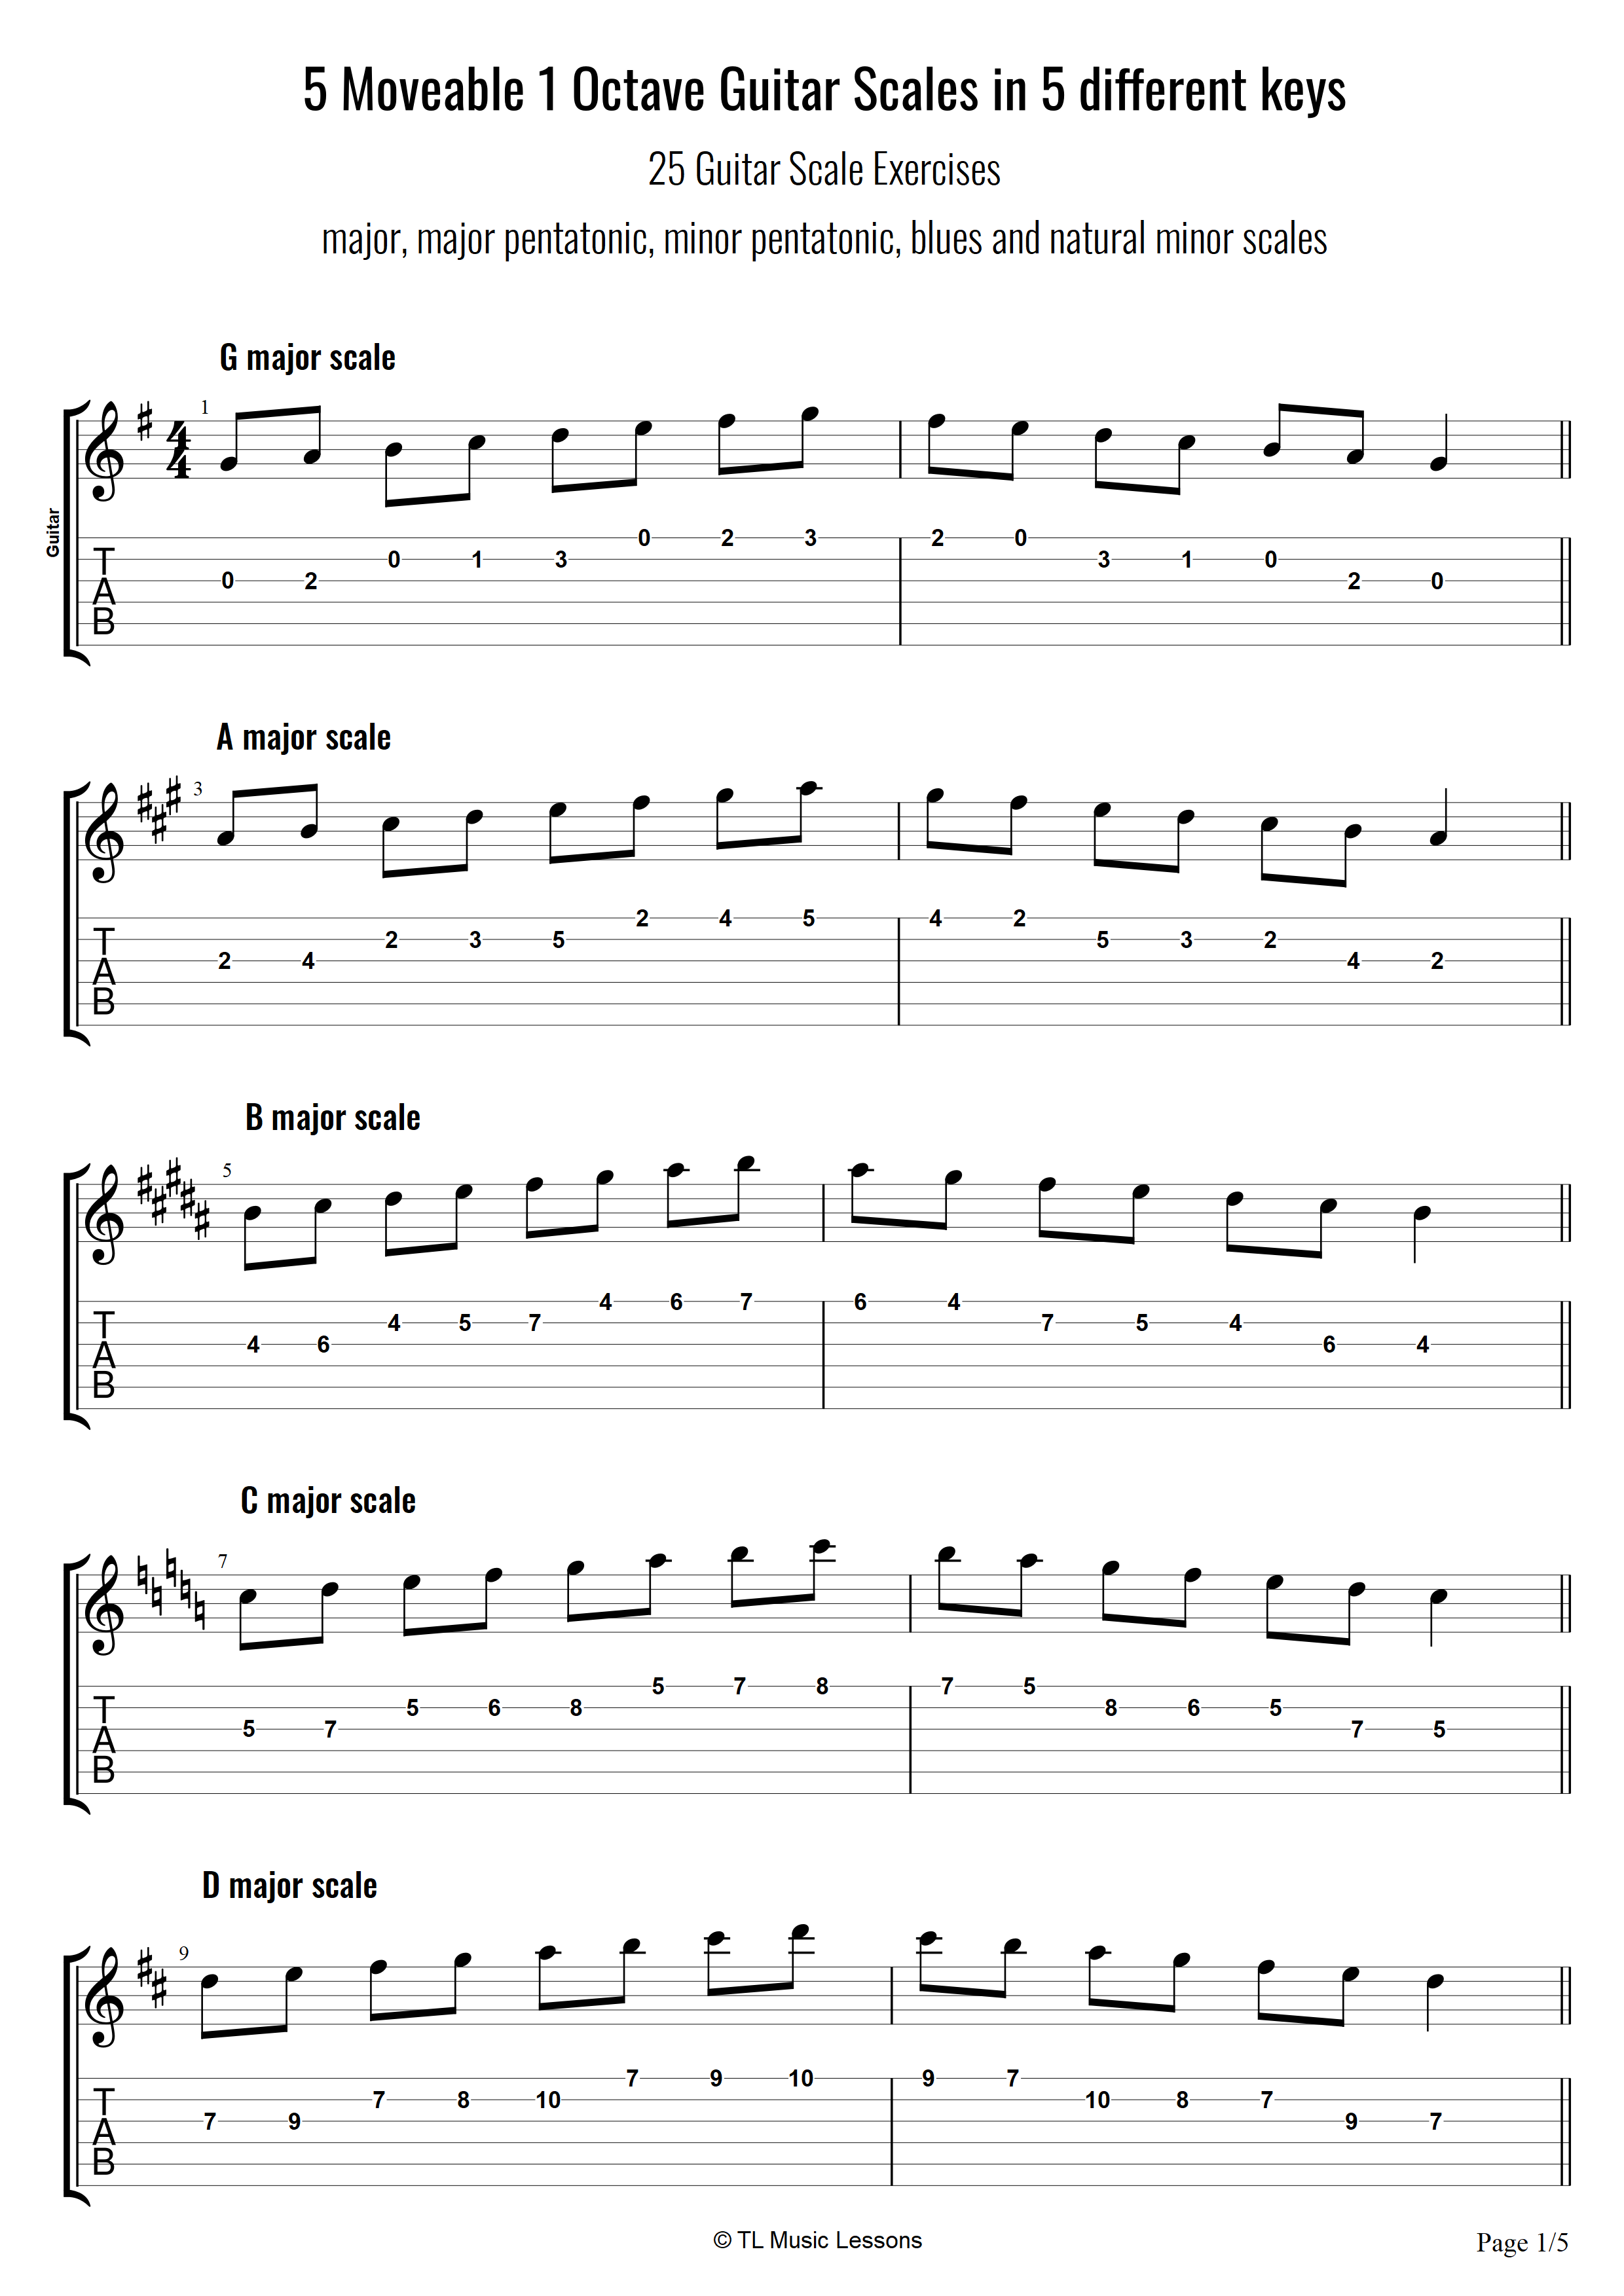 5 Movable 1 Octave Scale shapes in 5 keys – 25 Scales – PDF